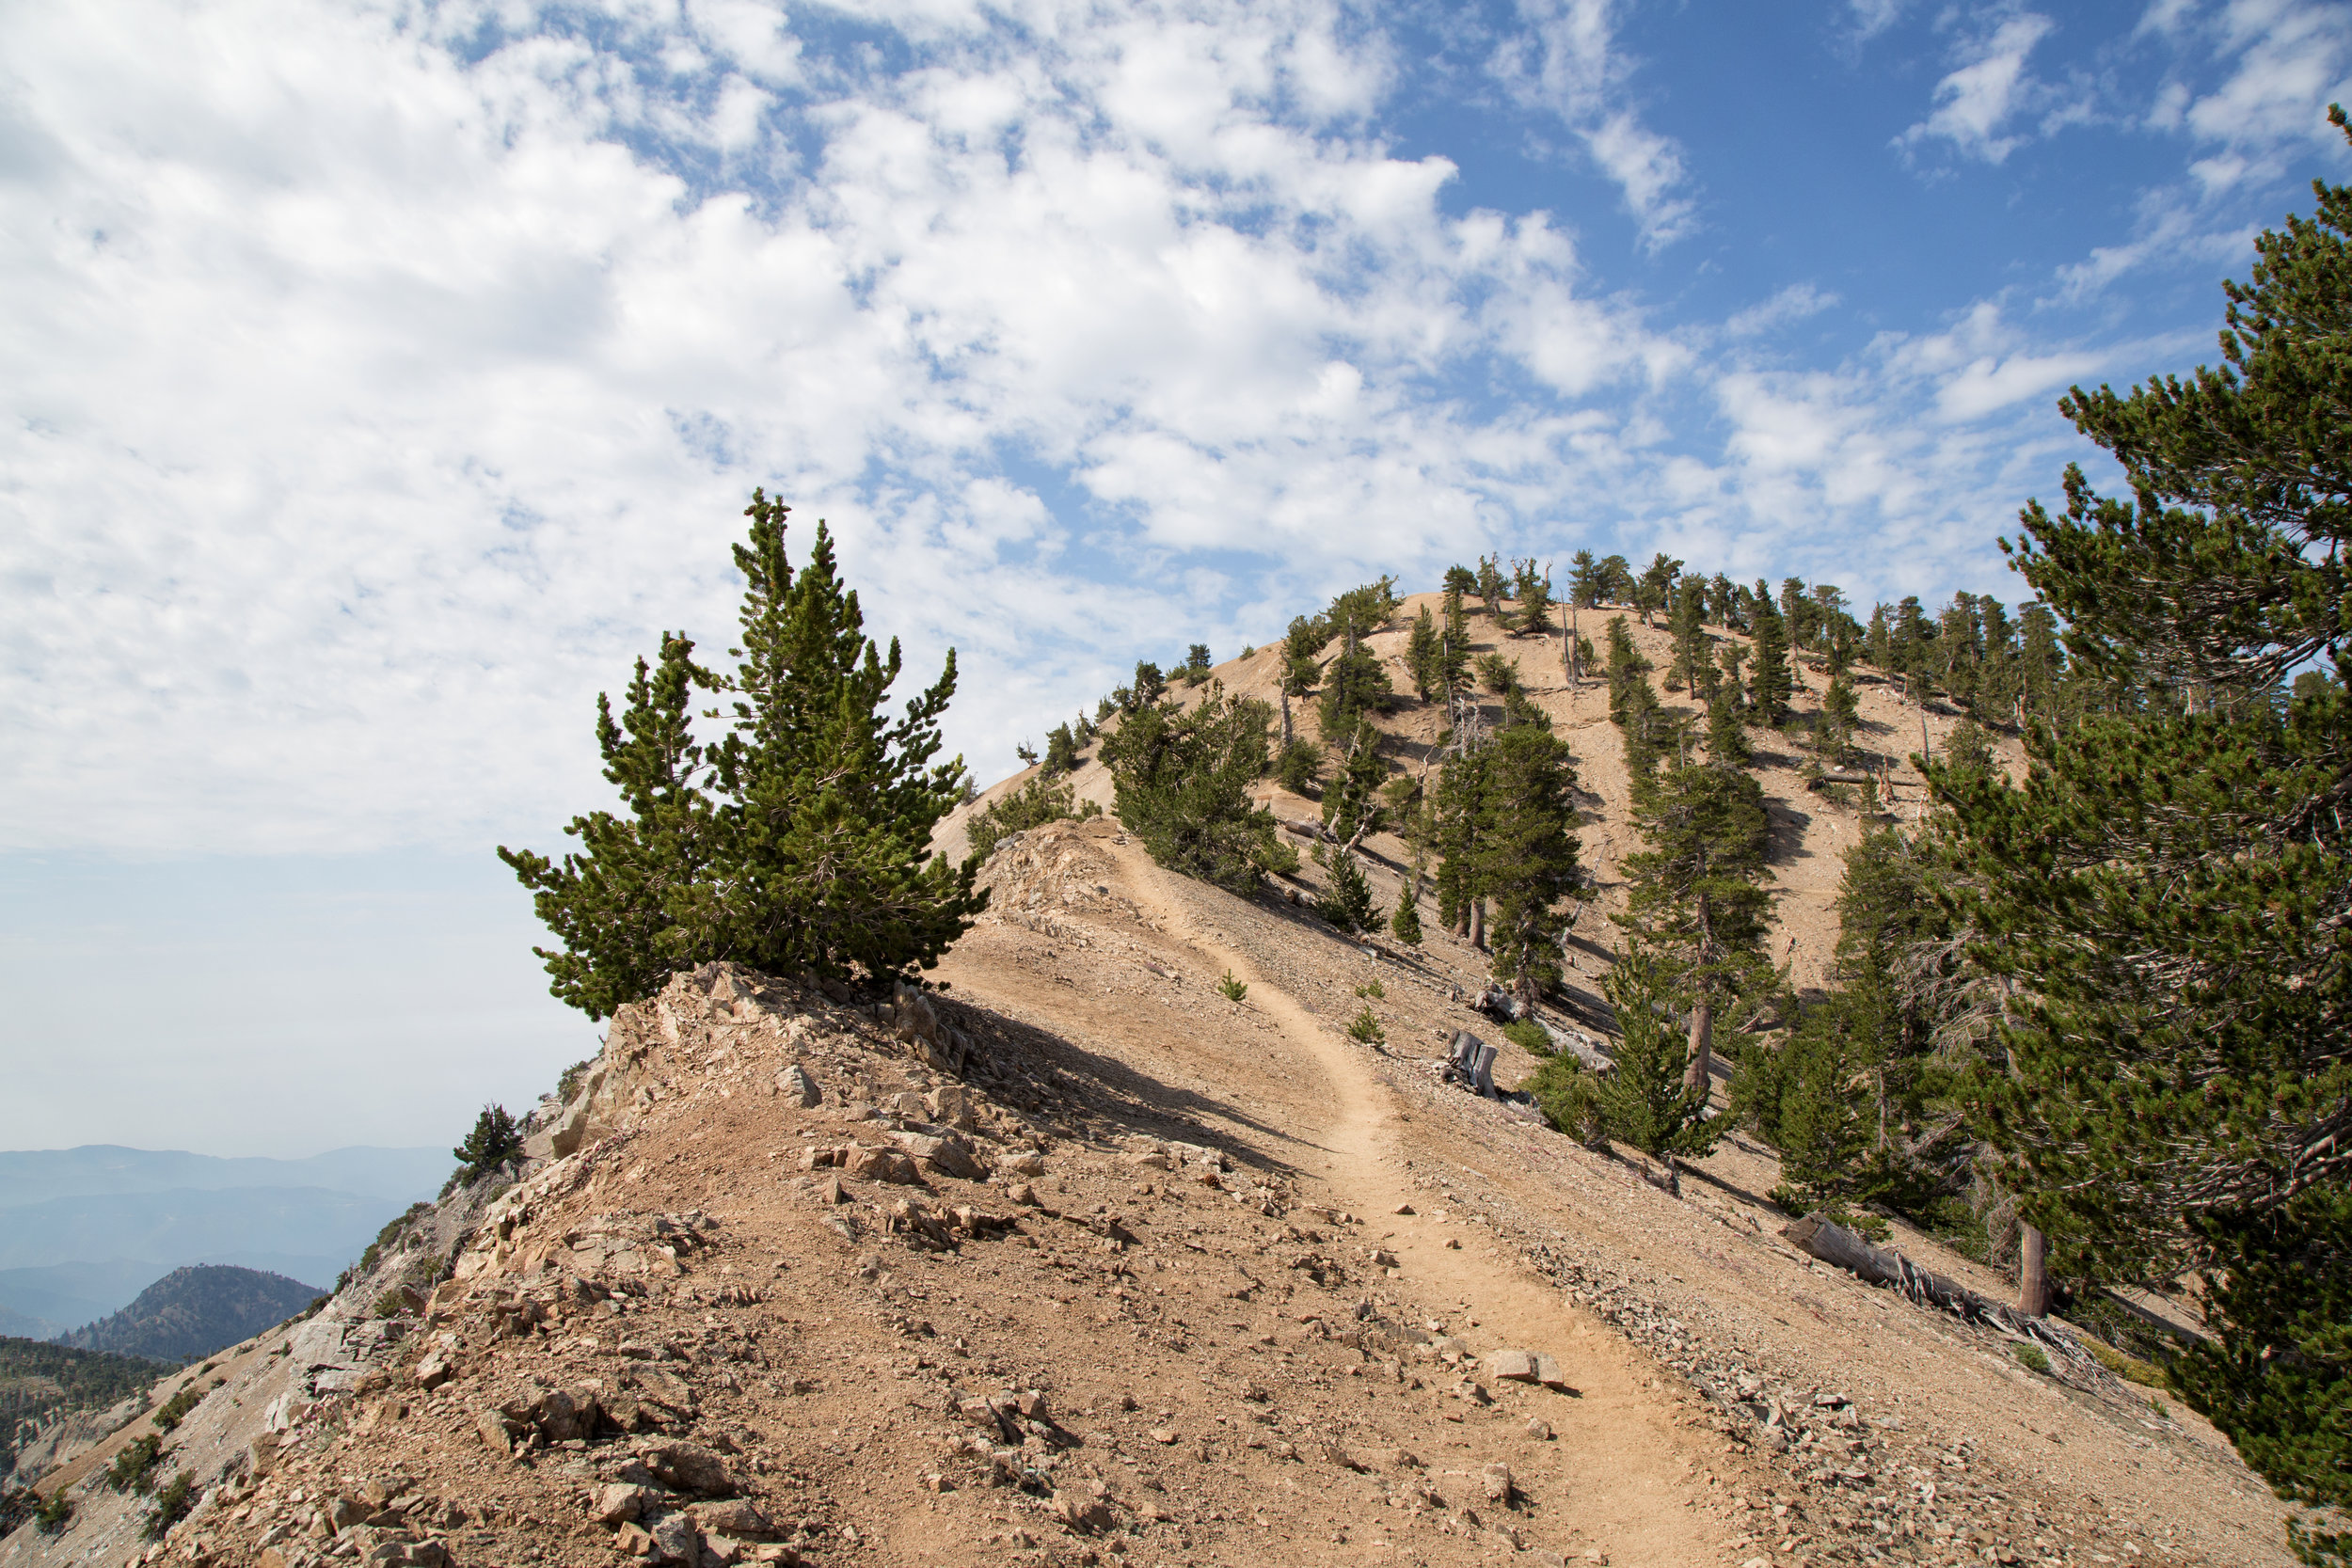 View as we started our trek across the ridge to the summit at 9,247 ft.